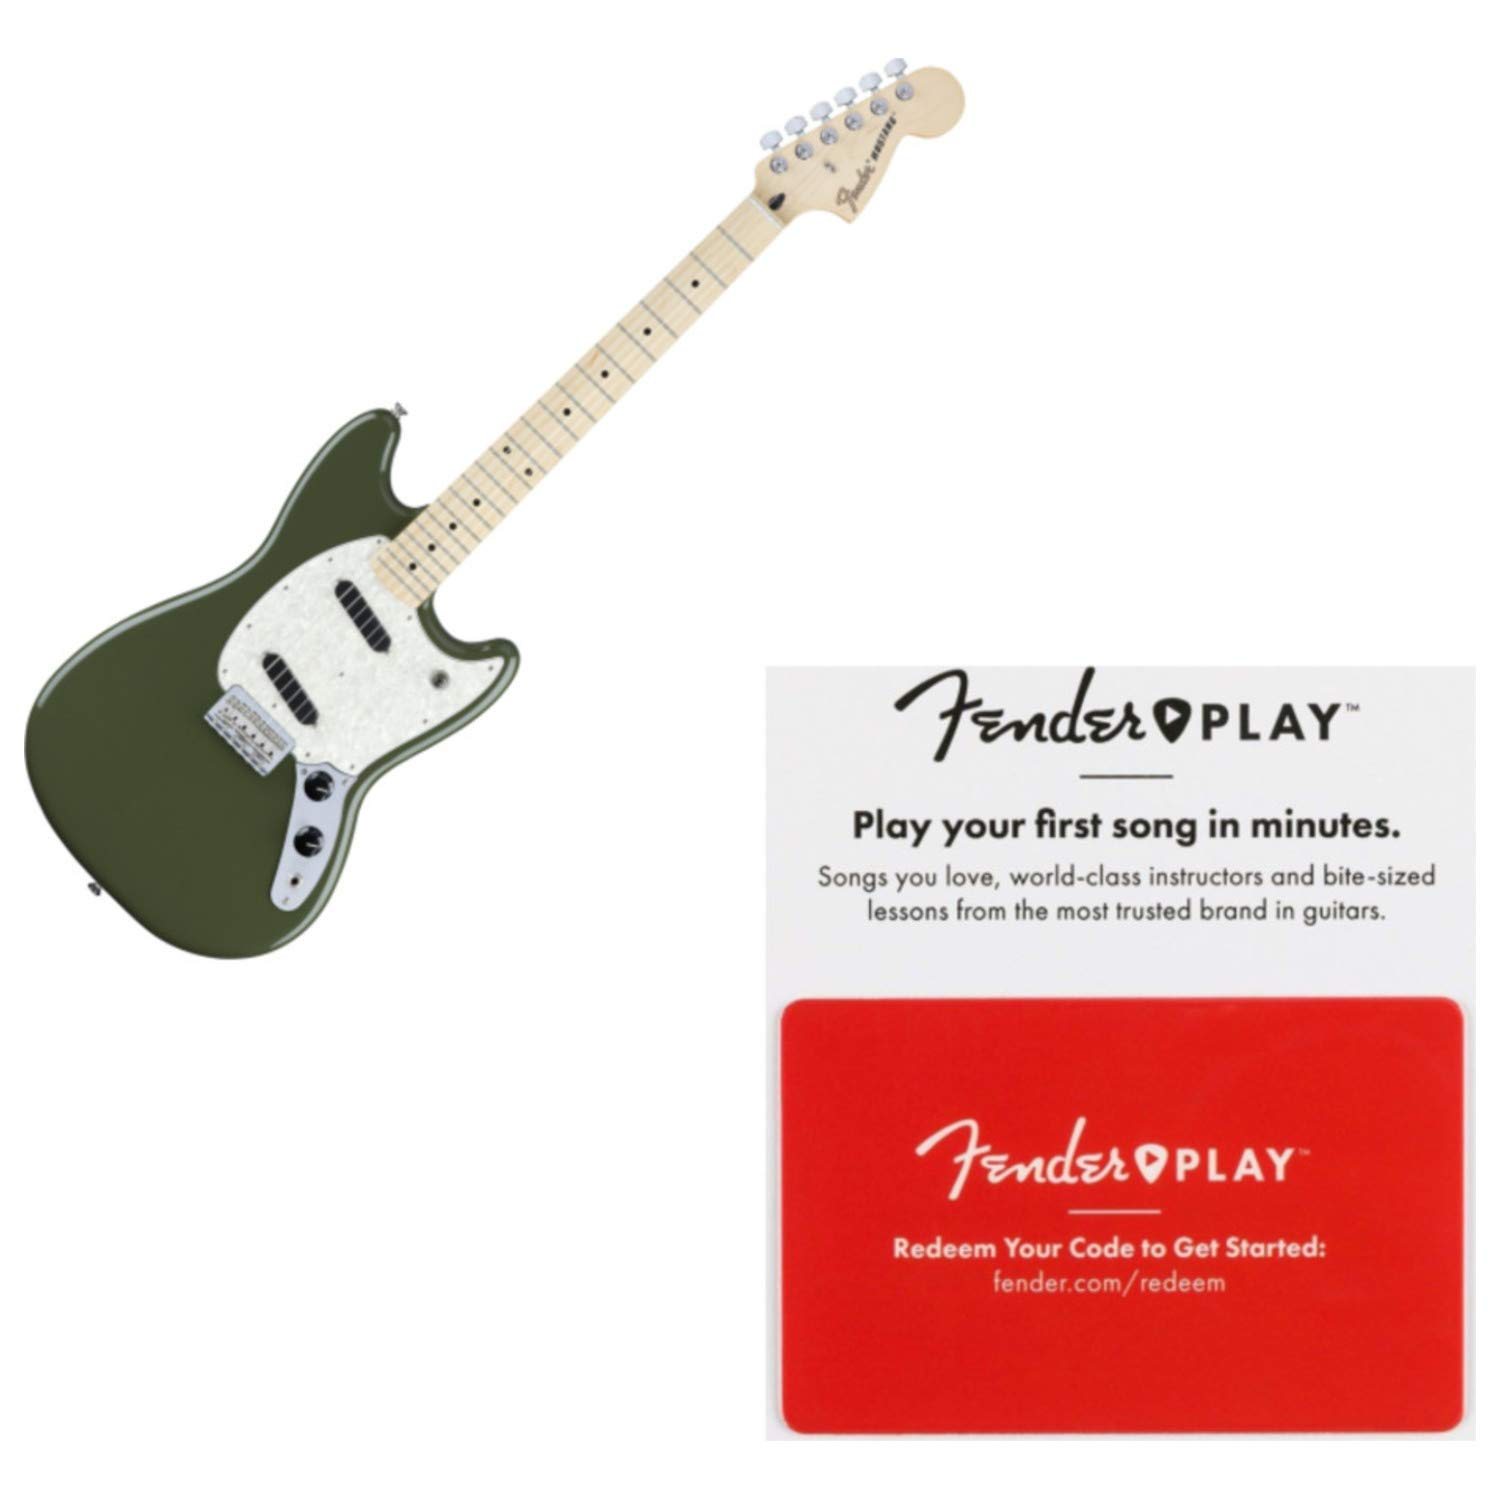 Cheap Fender Offset Series Mustang Maple Neck Olive Electric Guitar w/Fender Play Pre Black Friday & Cyber Monday 2019